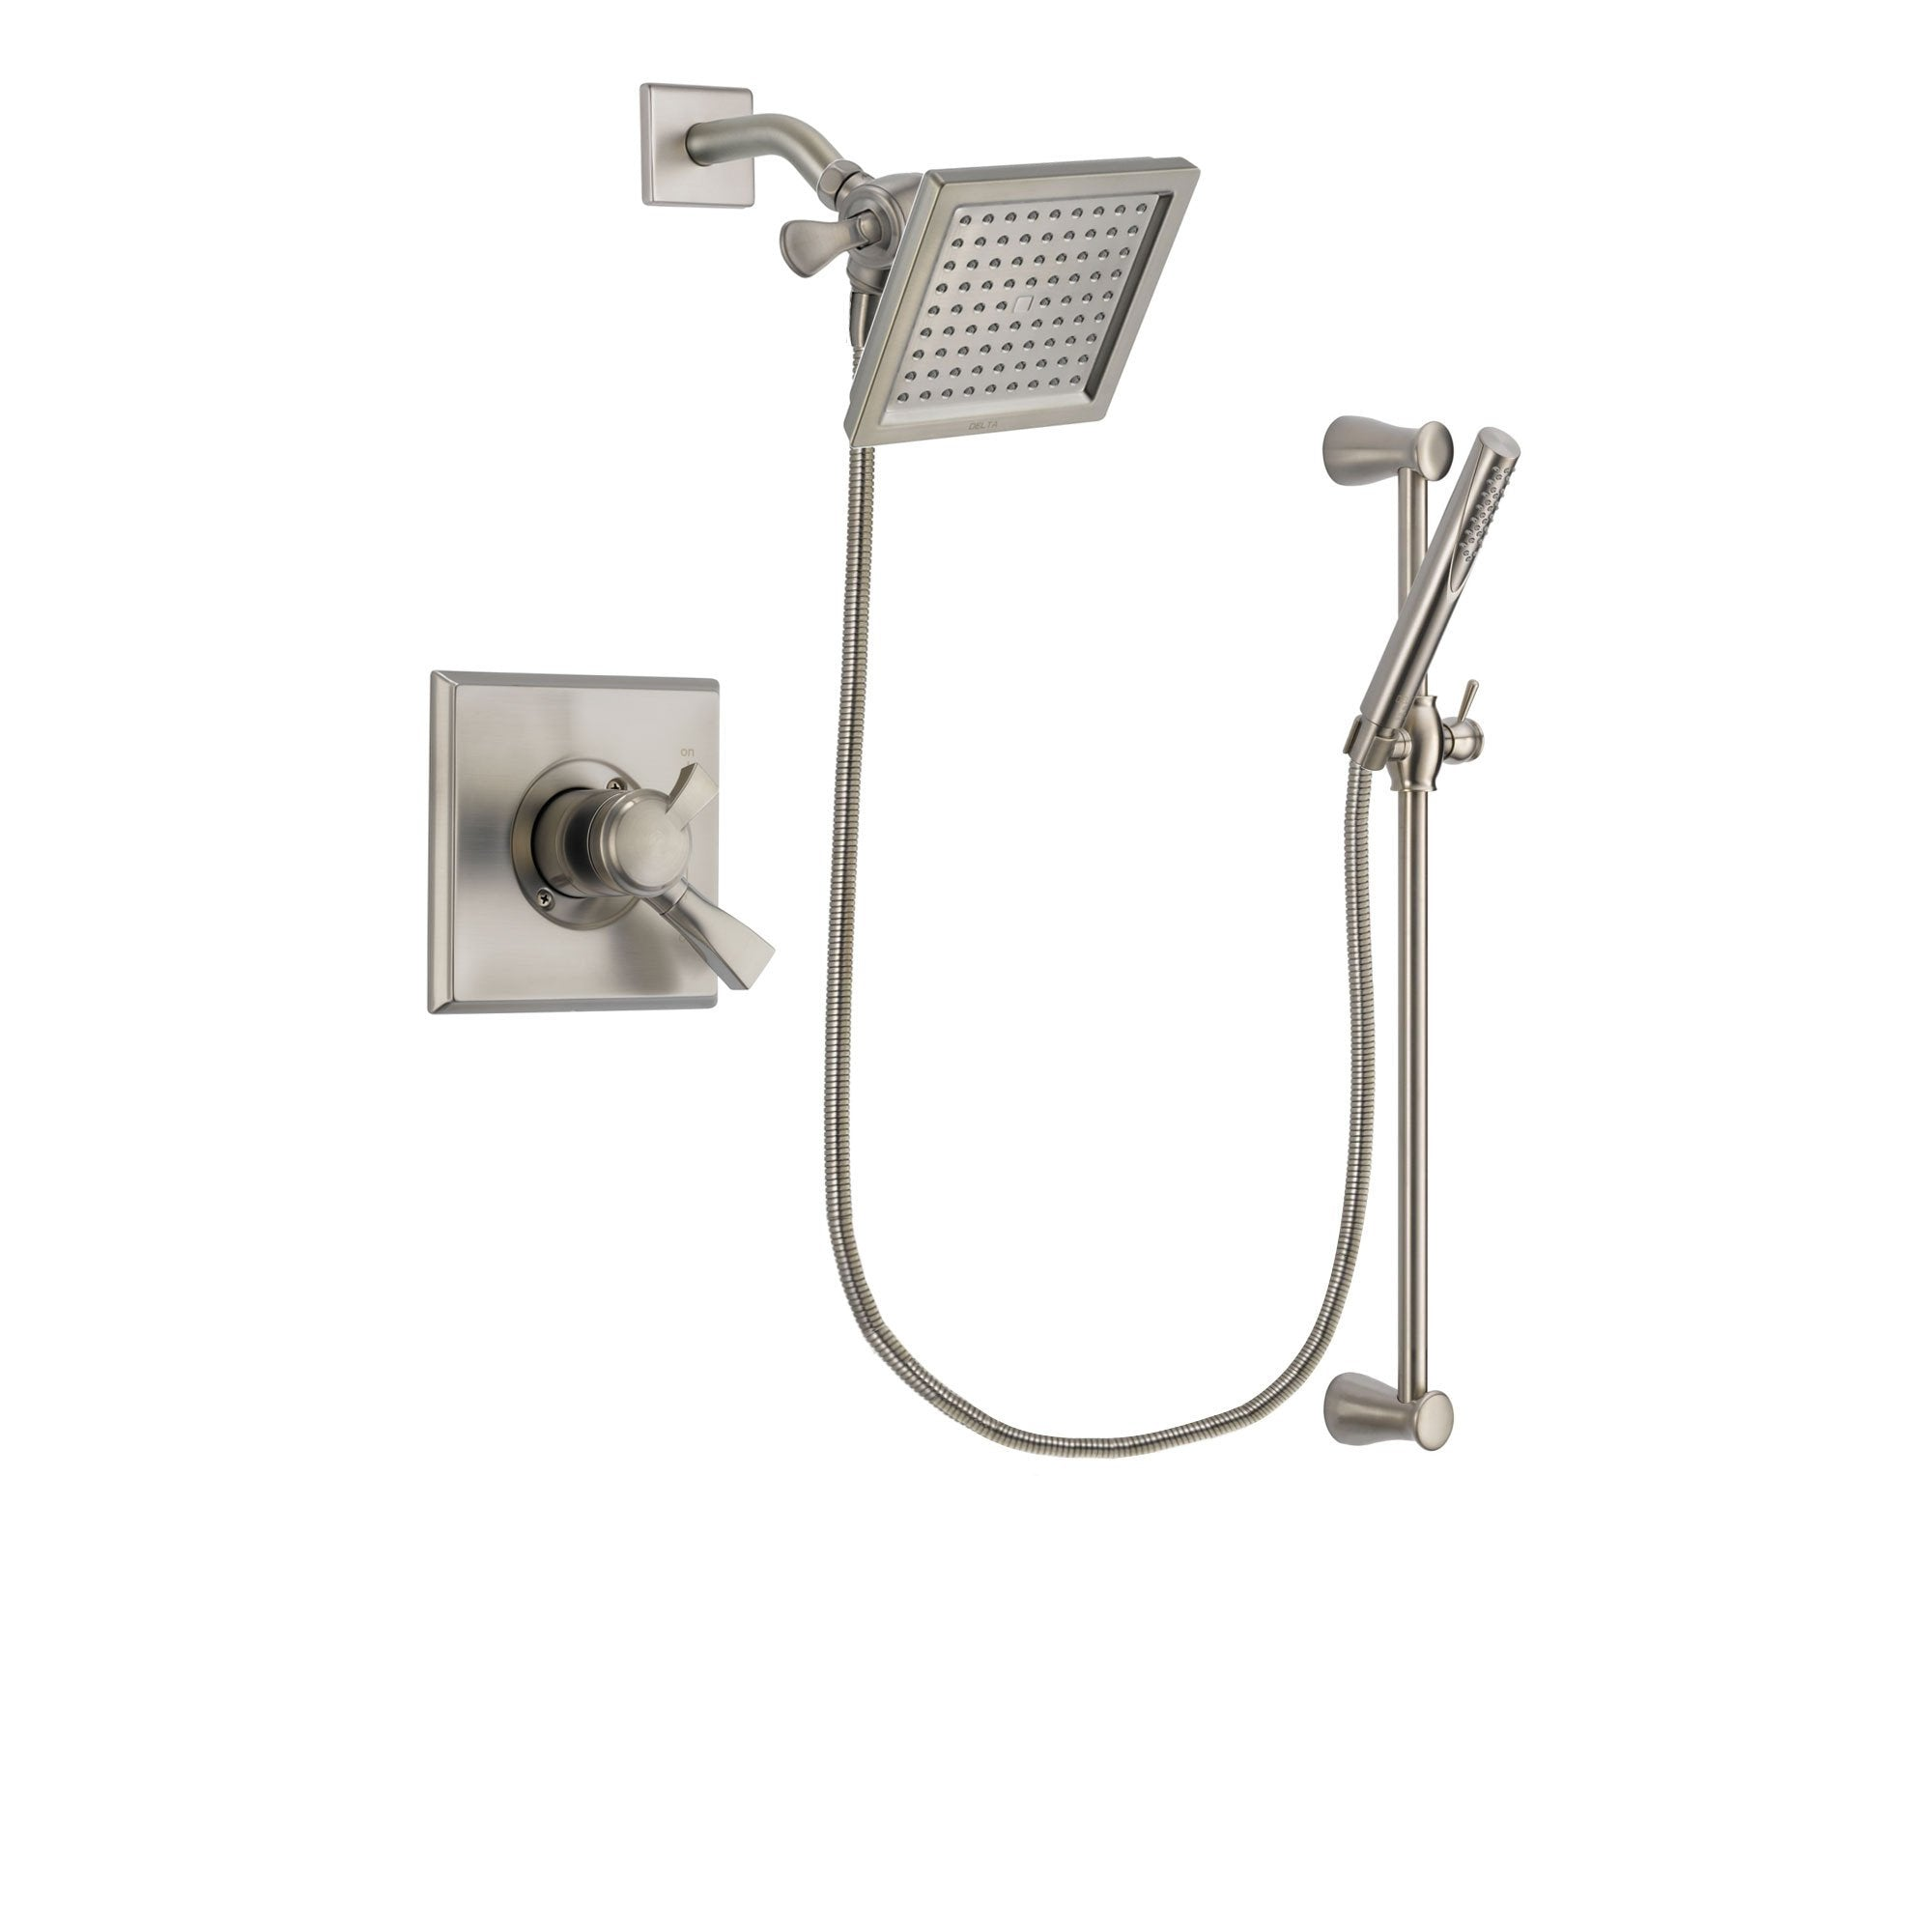 Delta Dryden Stainless Steel Finish Shower Faucet System w/ Hand Spray DSP2304V